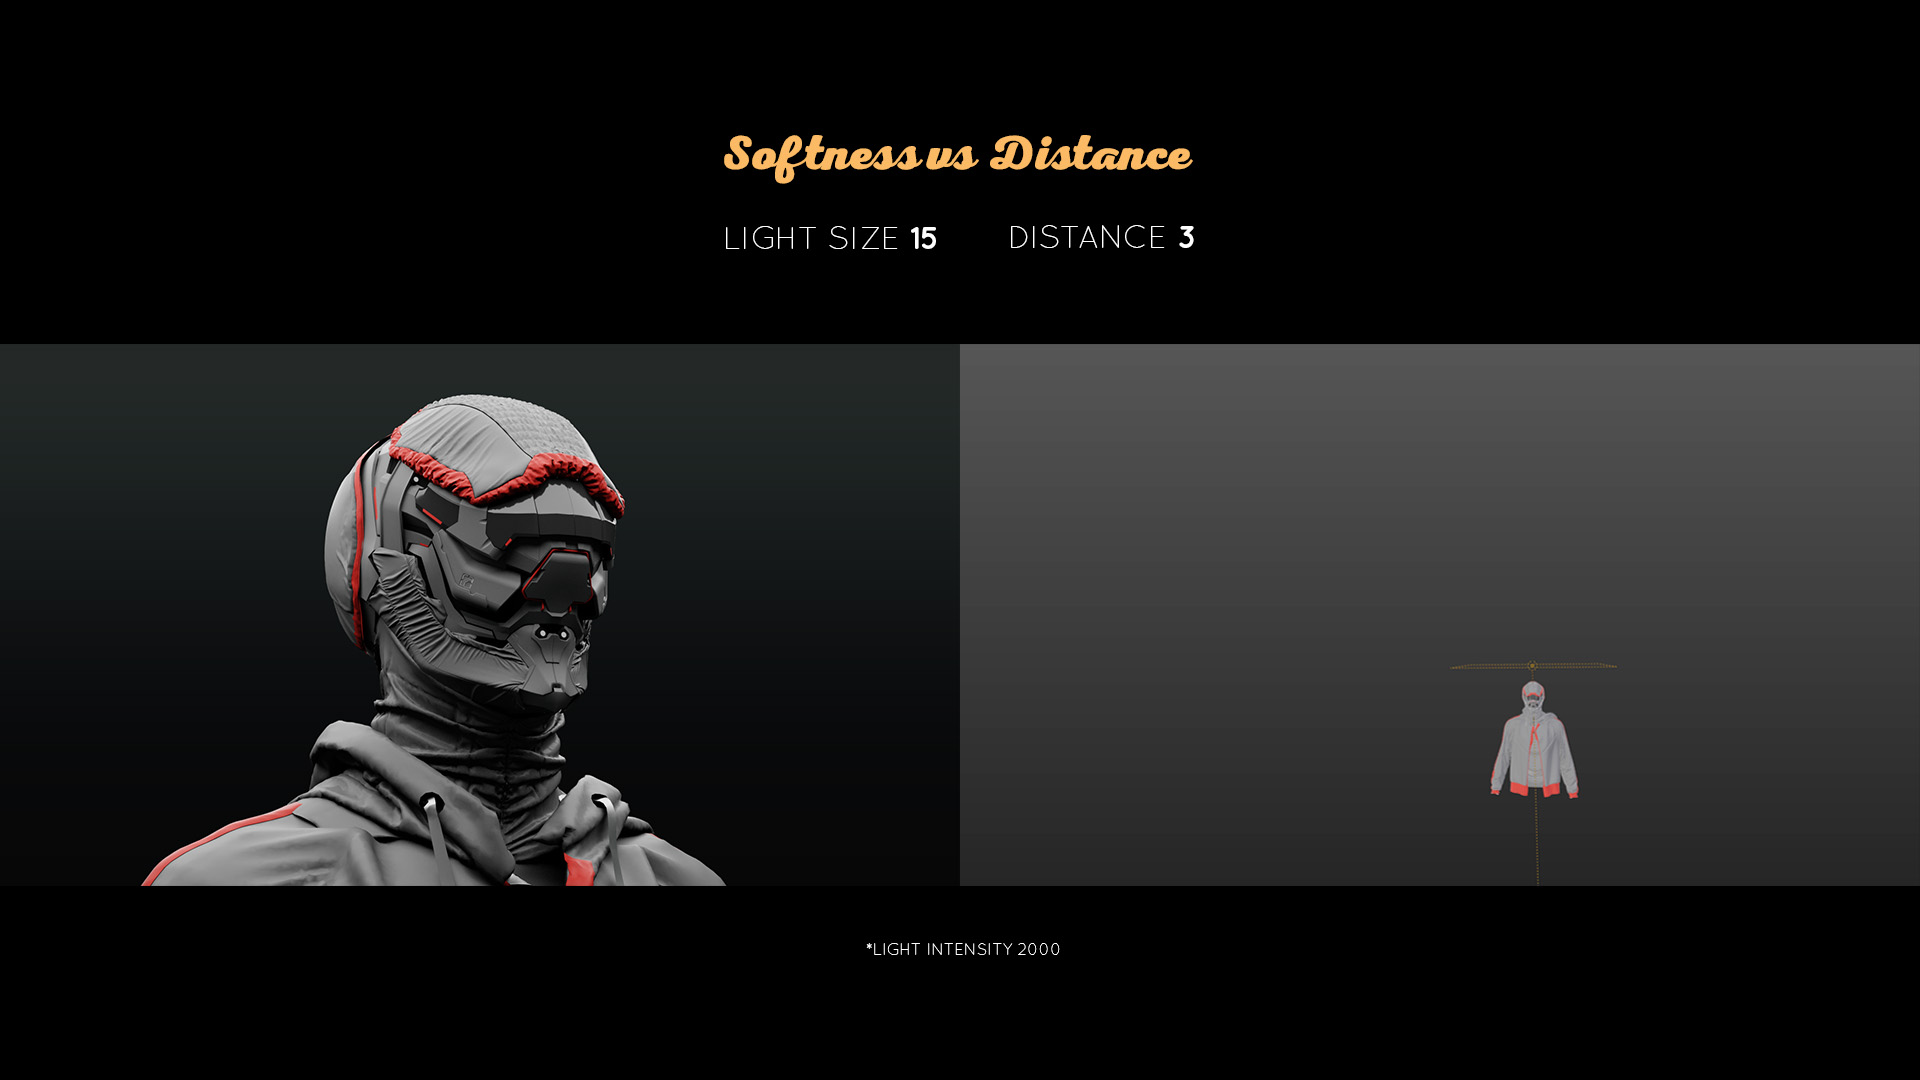 lighting tutorial softness vs distance